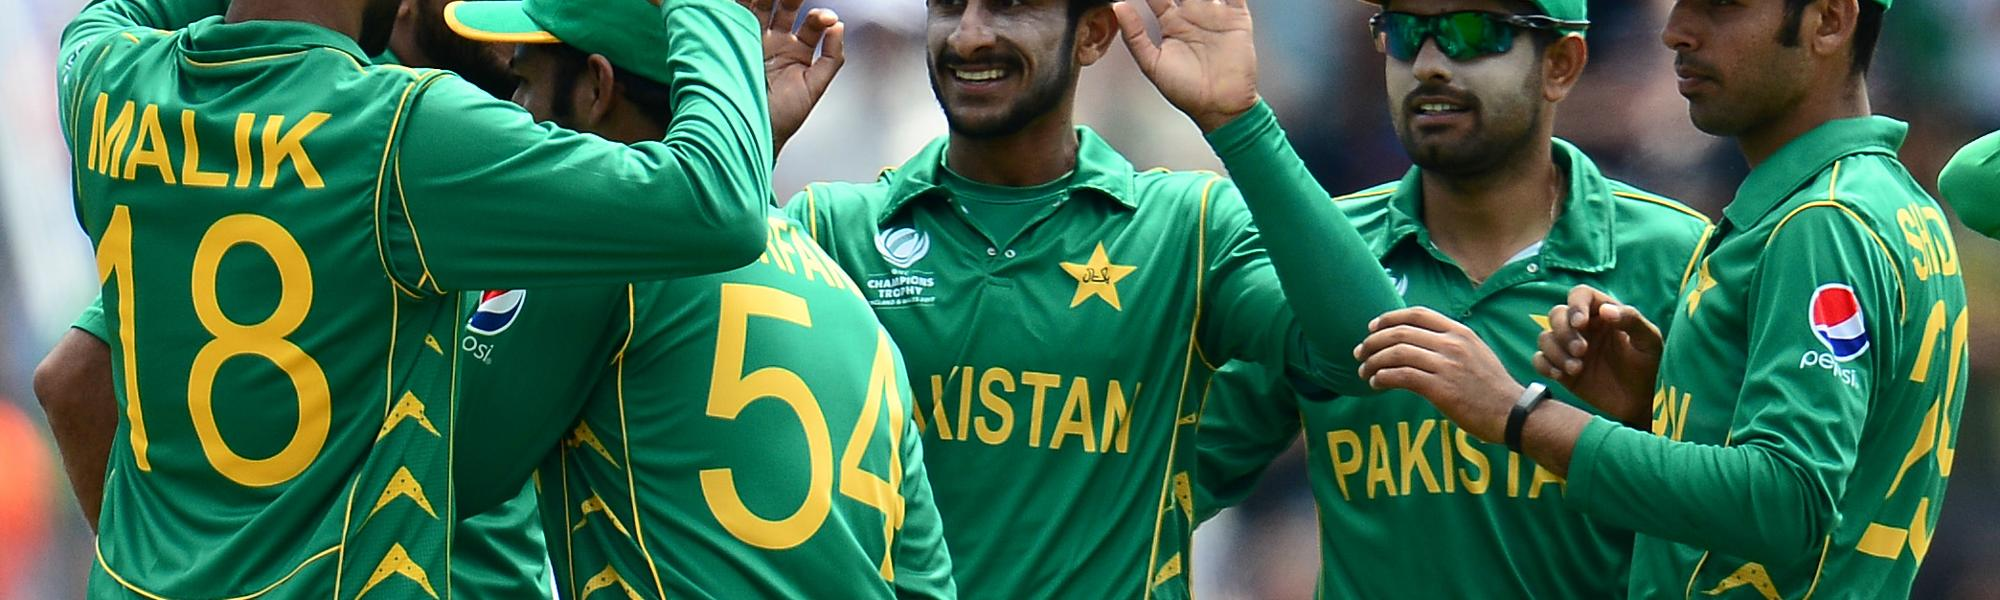 Hassan Ali was the pick of the Pakistani bowlers, returning with figures of 3 for 35 in his ten overs.